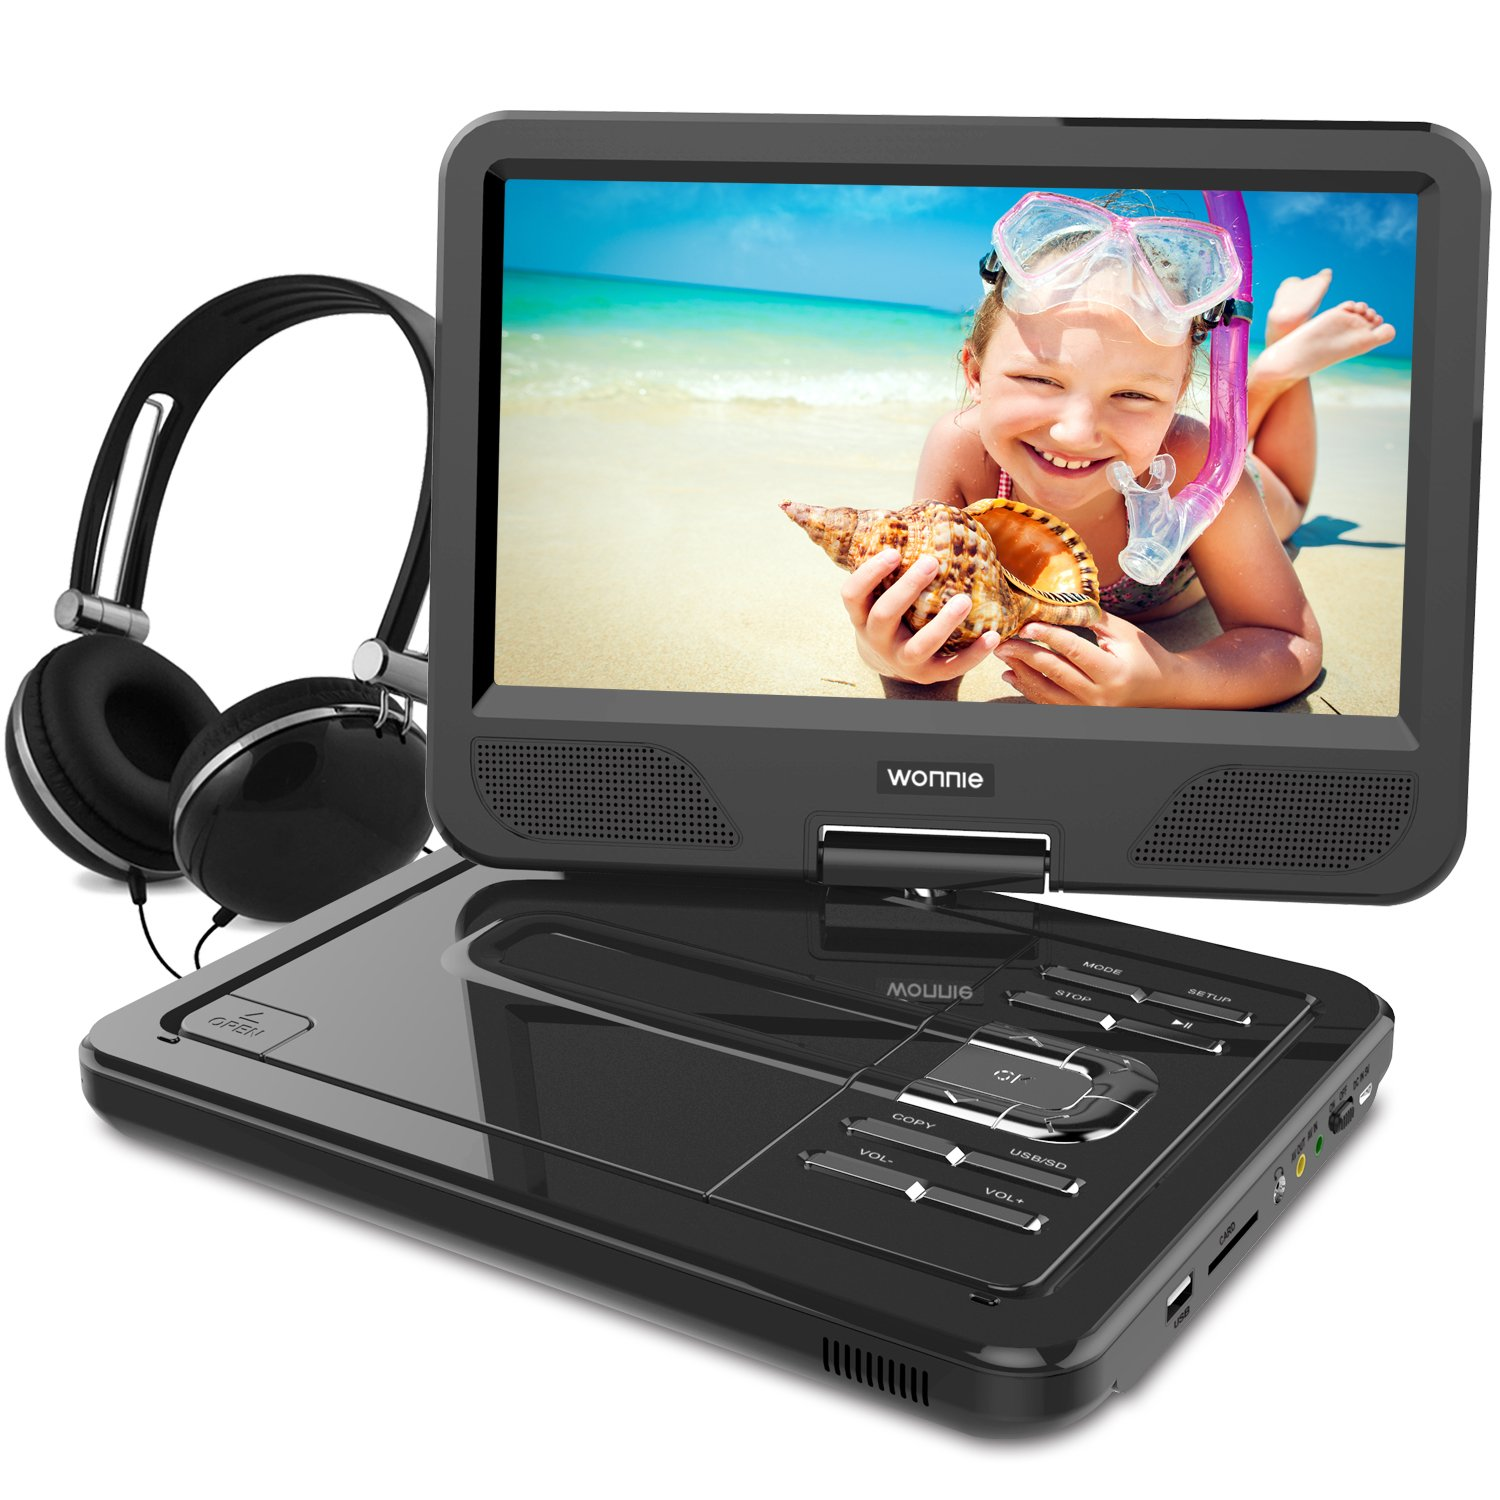 WONNIE 10.5 Inch Portable DVD Player with Rechargeable Battery, Swivel Screen, SD Card Slot and USB Port and Stereo Earphones (Black) by WONNIE